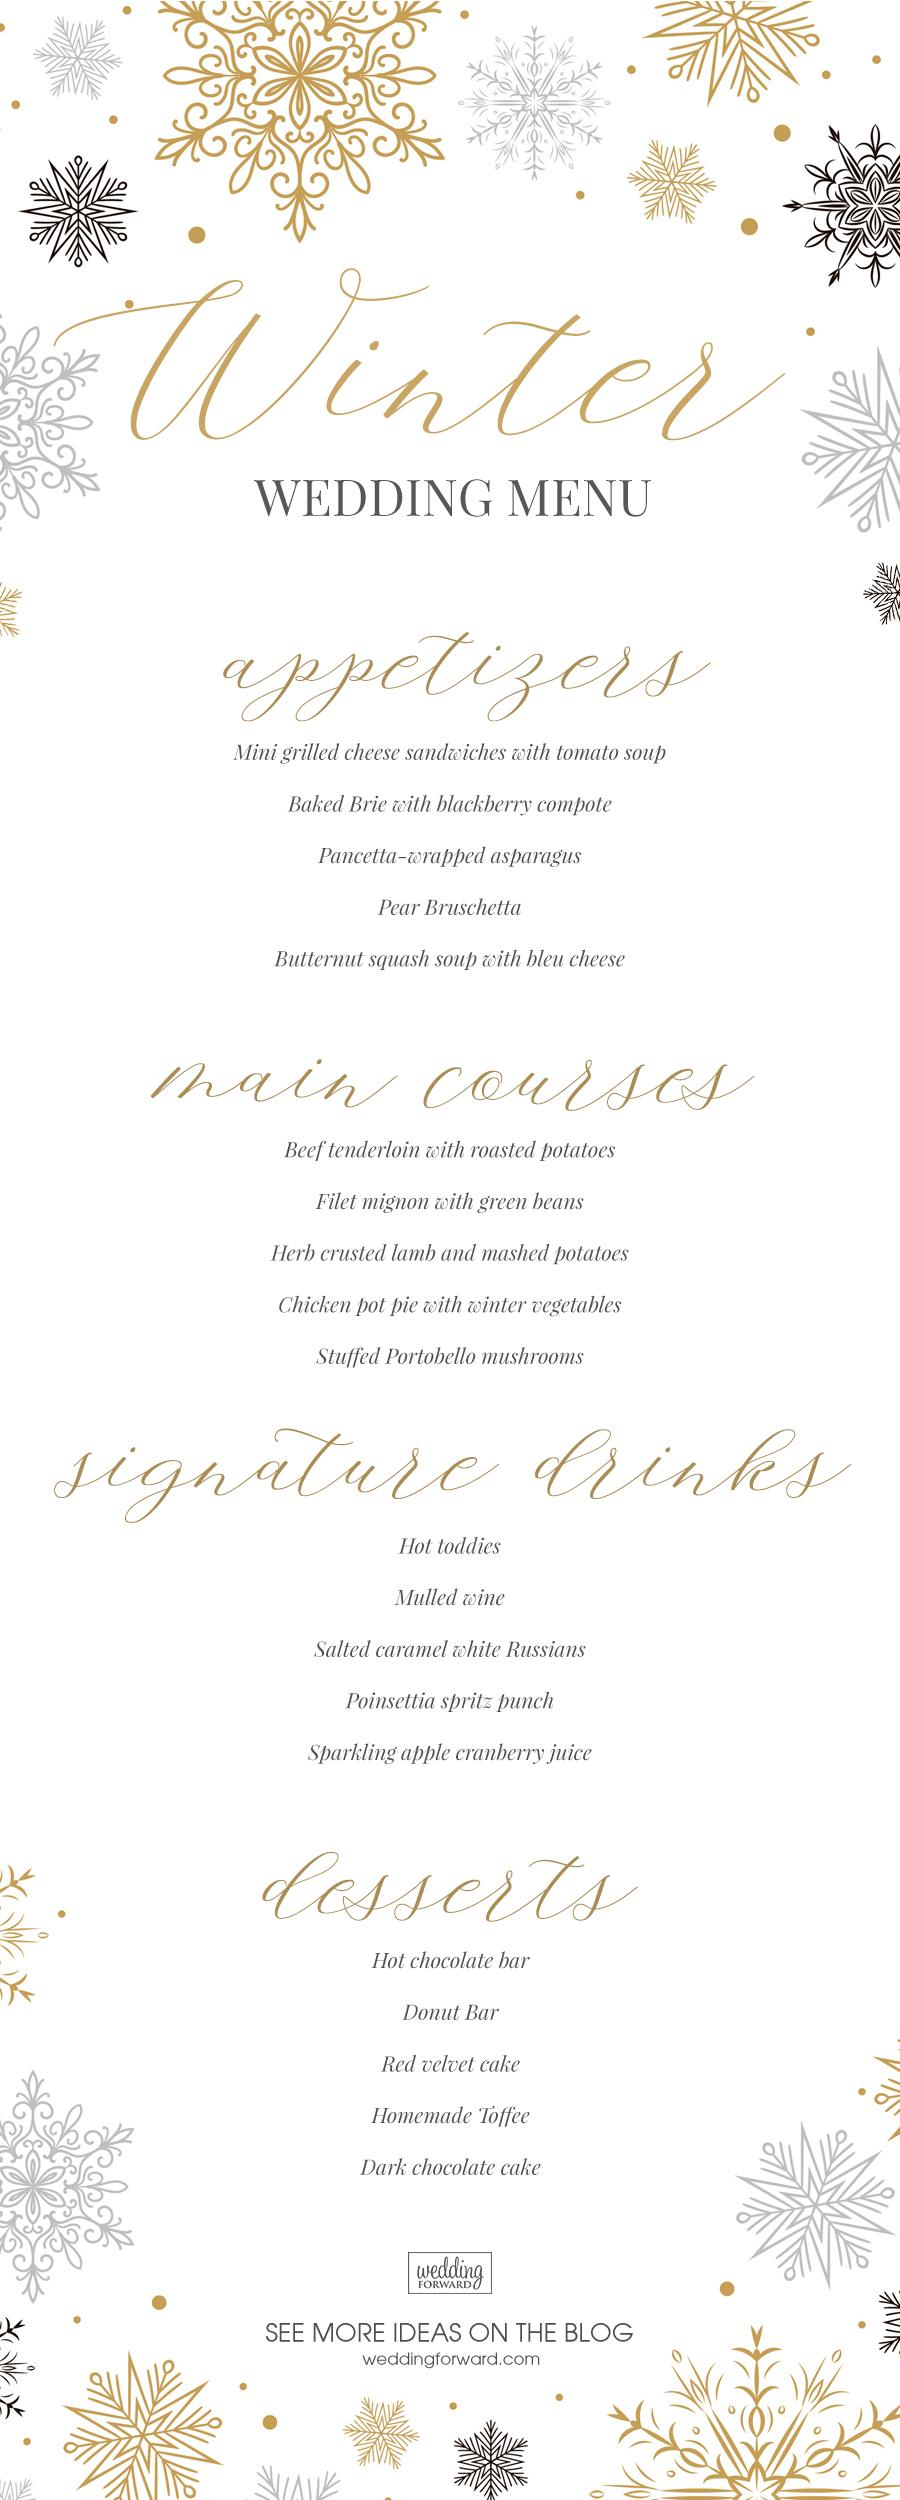 winter wedding menu - wedding menu ideas